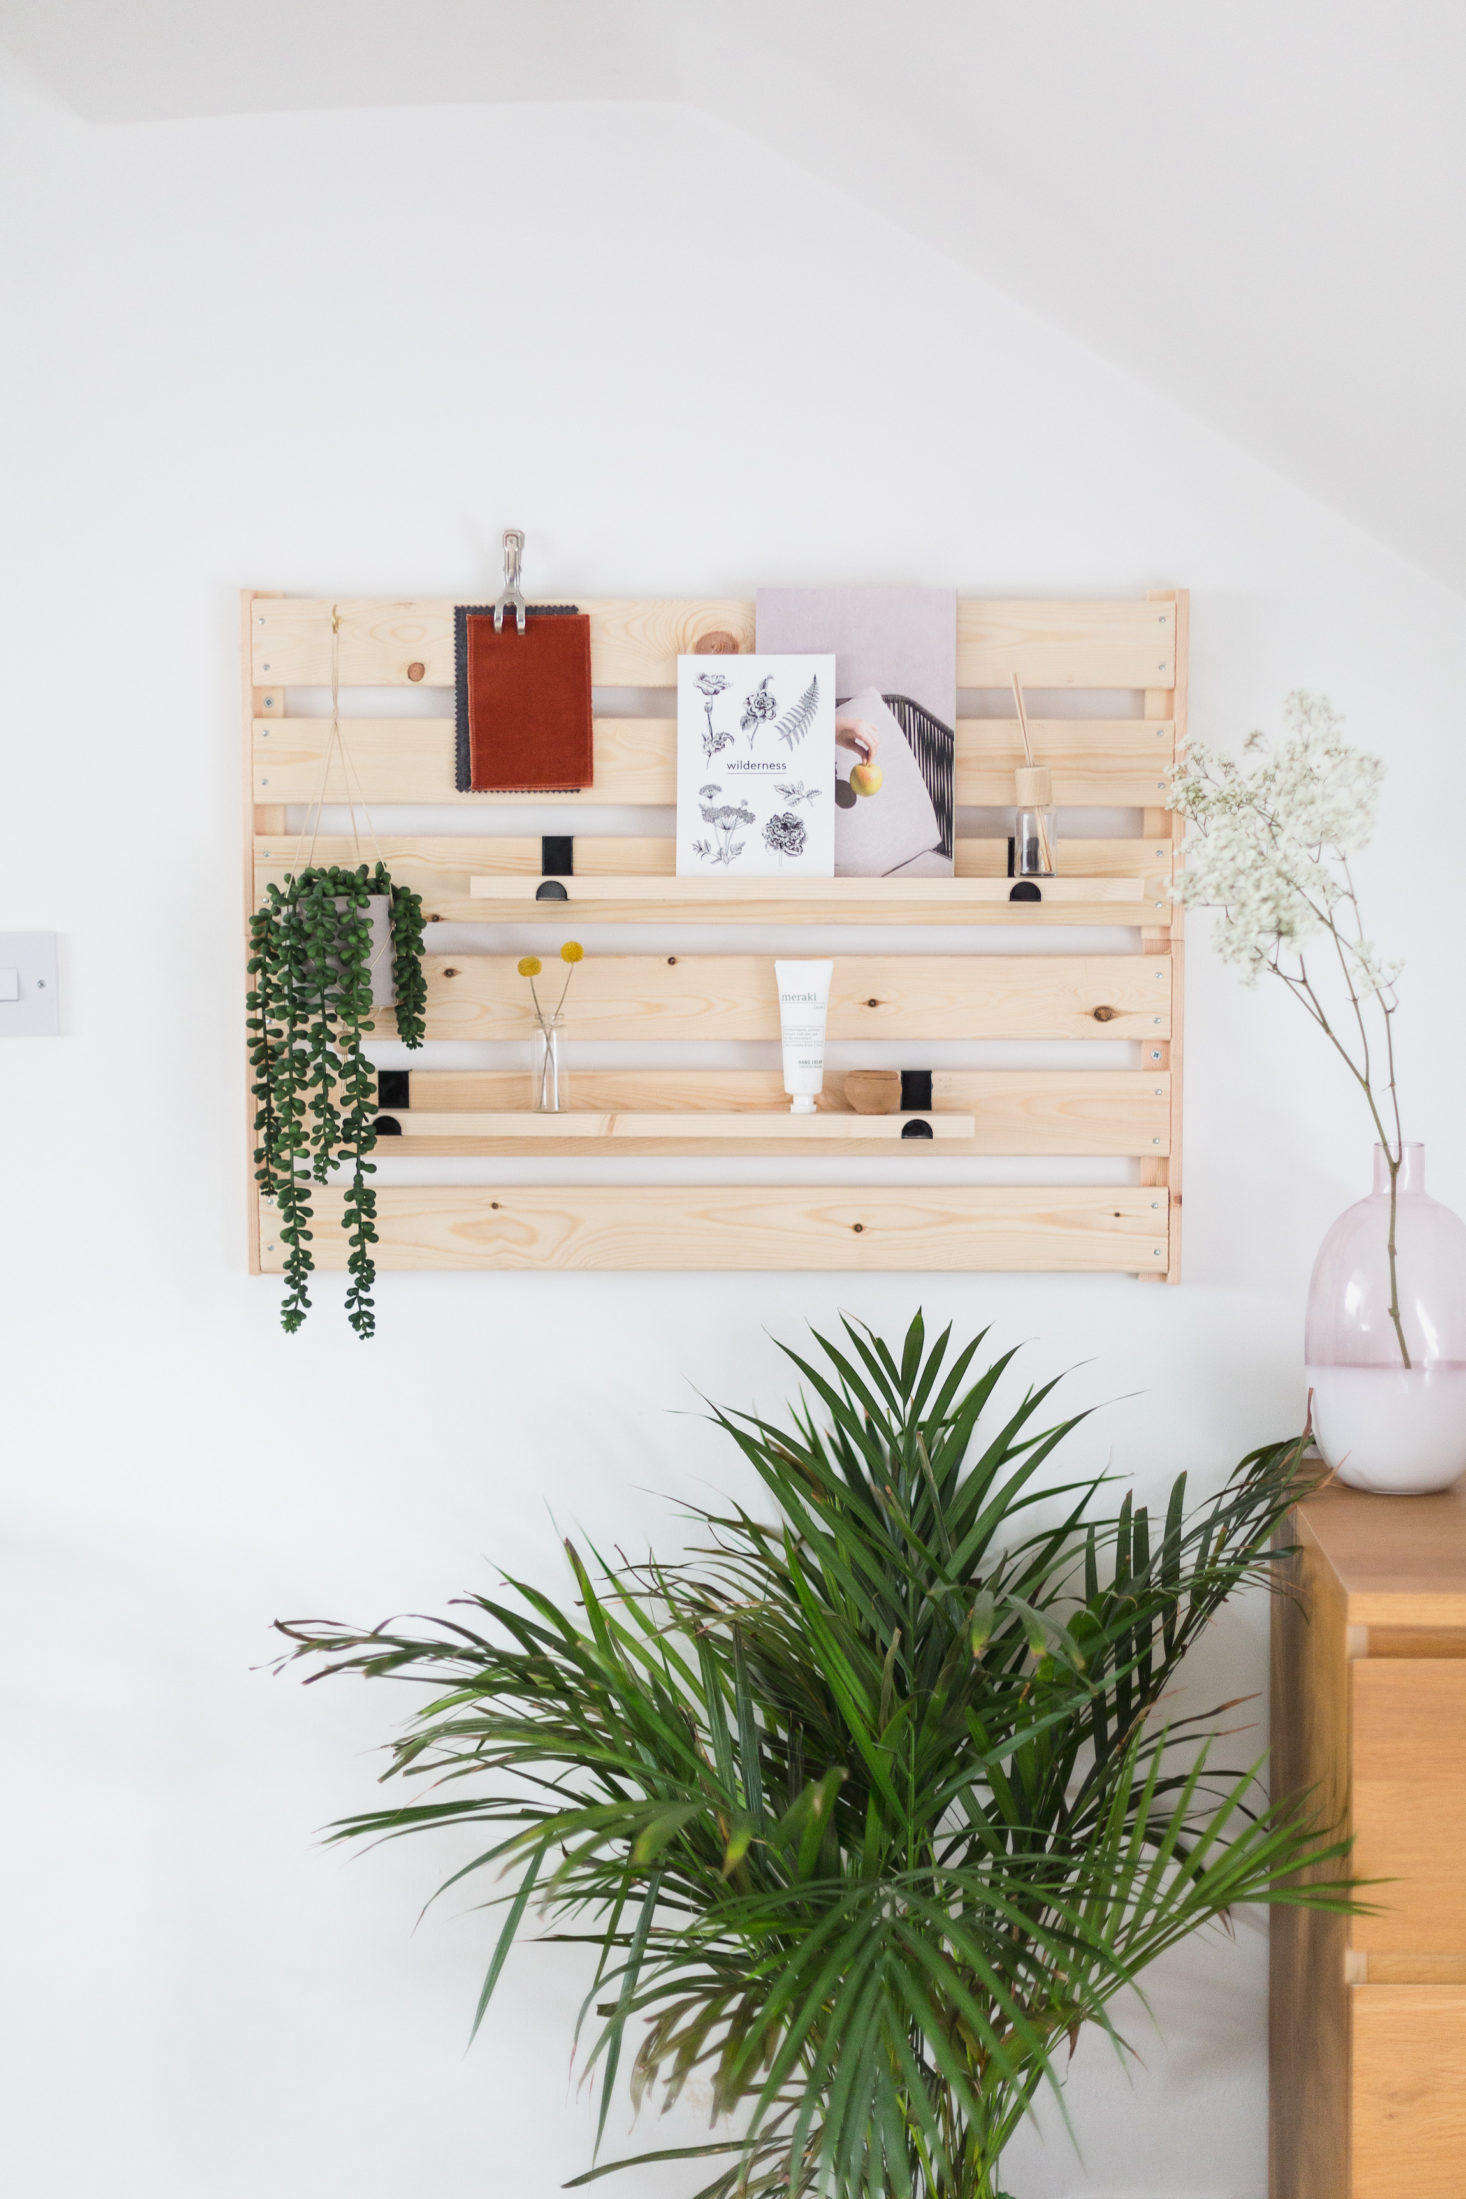 Up first: A low budget, high-style project that feeds our obsession with slatted wall organizers. See how to do it inDIY Ikea Hack: A Genius, No-Skills-Required Storage Project. Photograph by Francesca Stone, courtesy of Hunker.